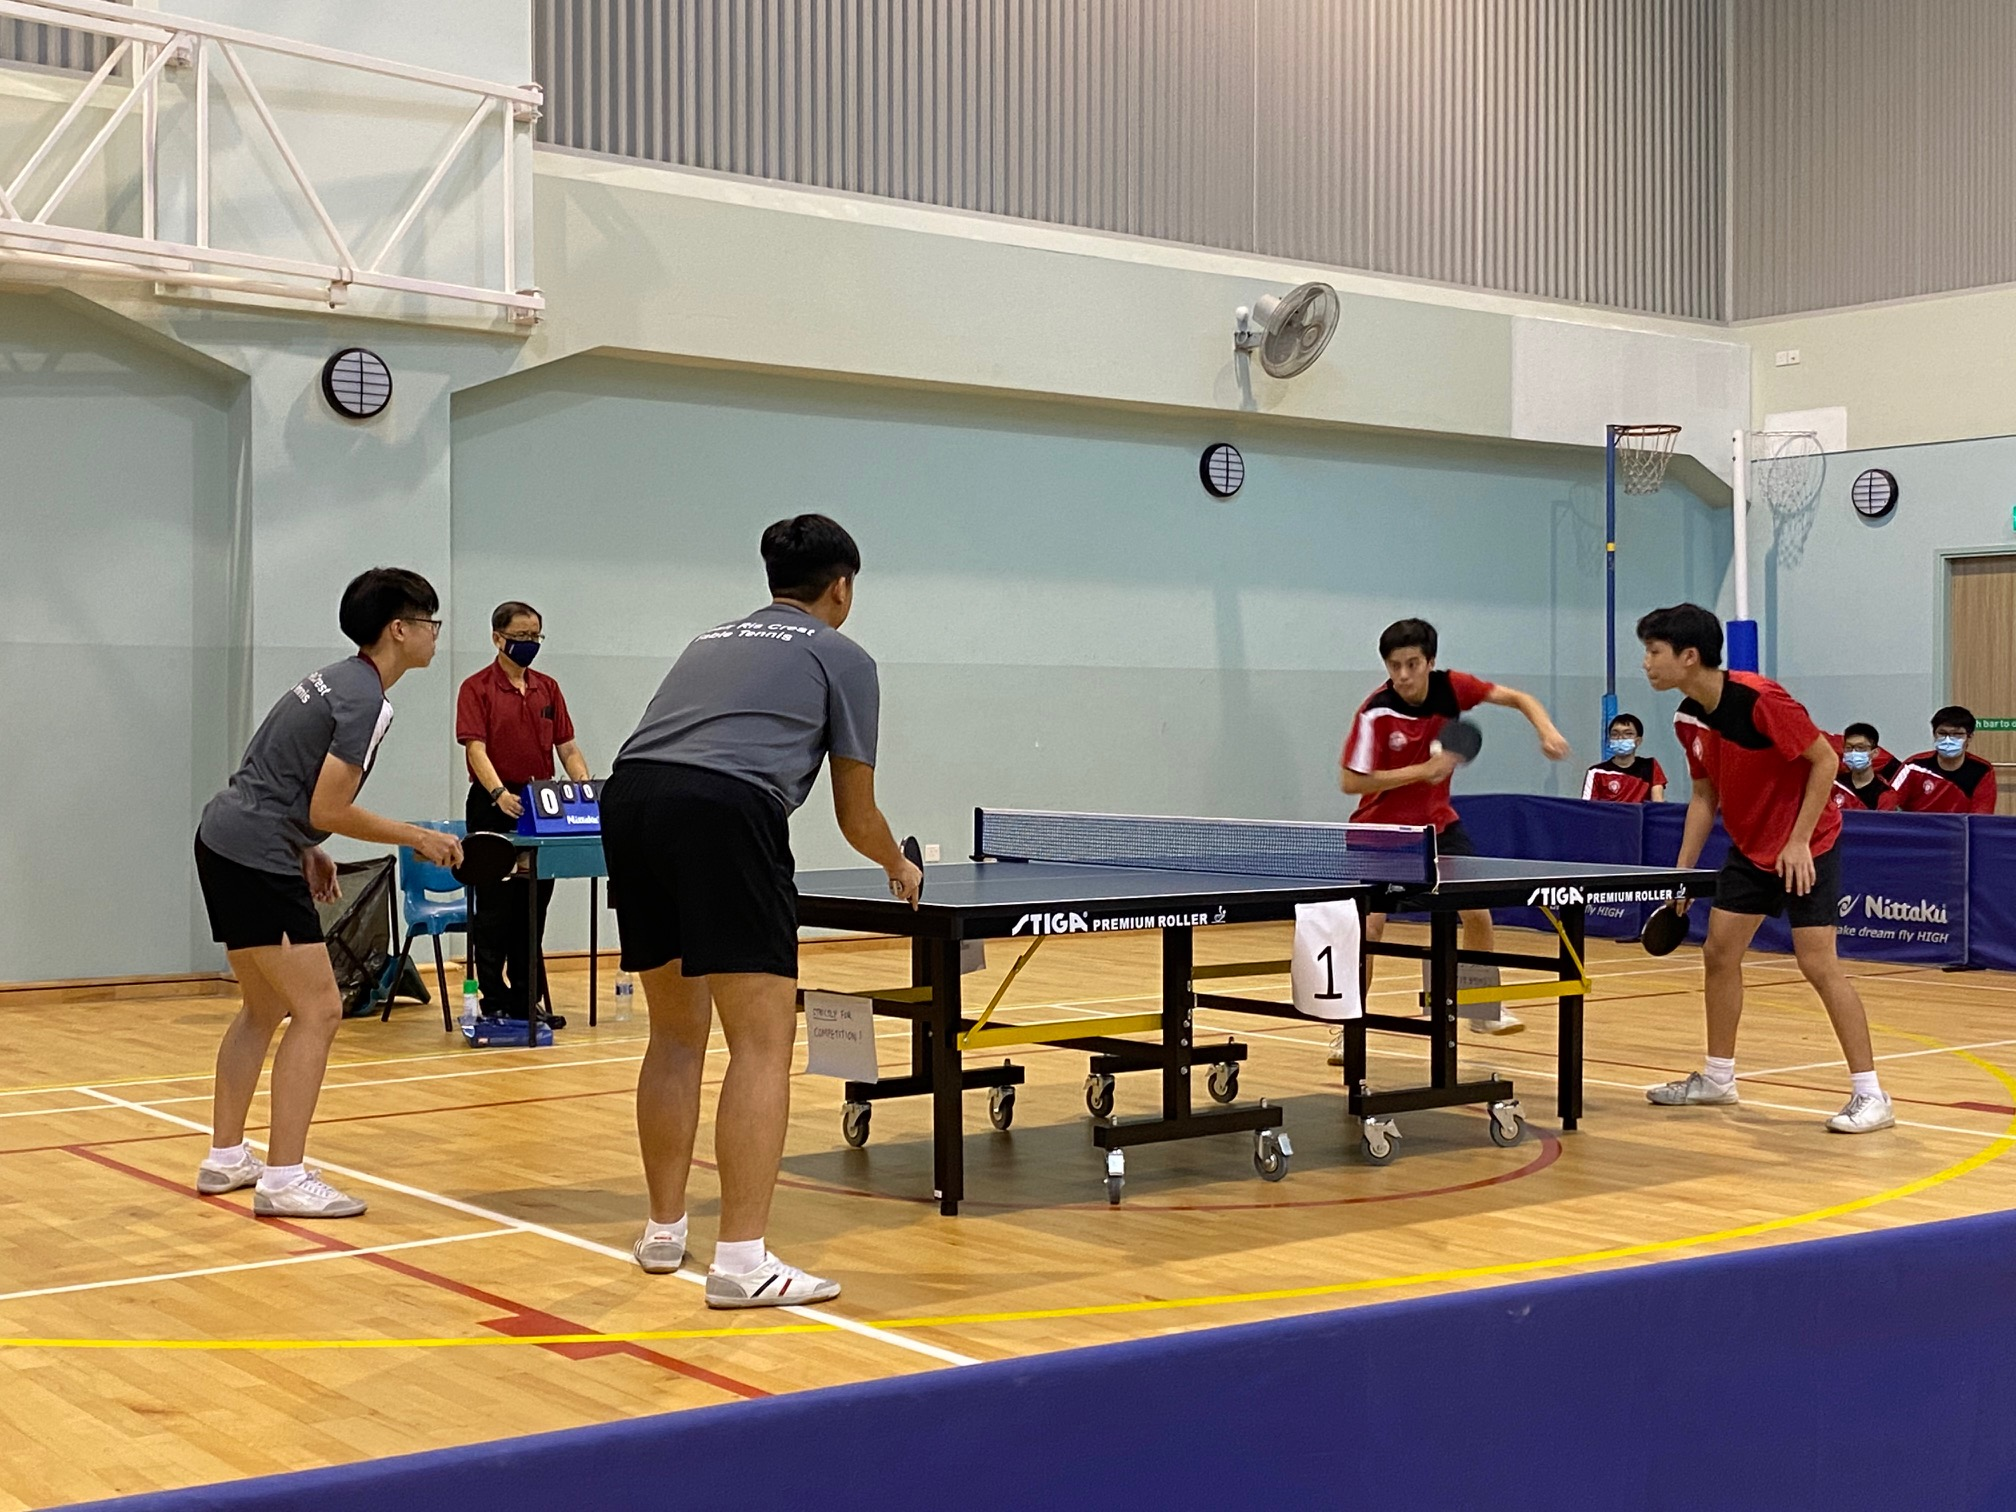 NSG B Div Boys' Table Tennis: Victoria Sch are 2-for-2 with 5-0 win over Pasir Ris Crest!